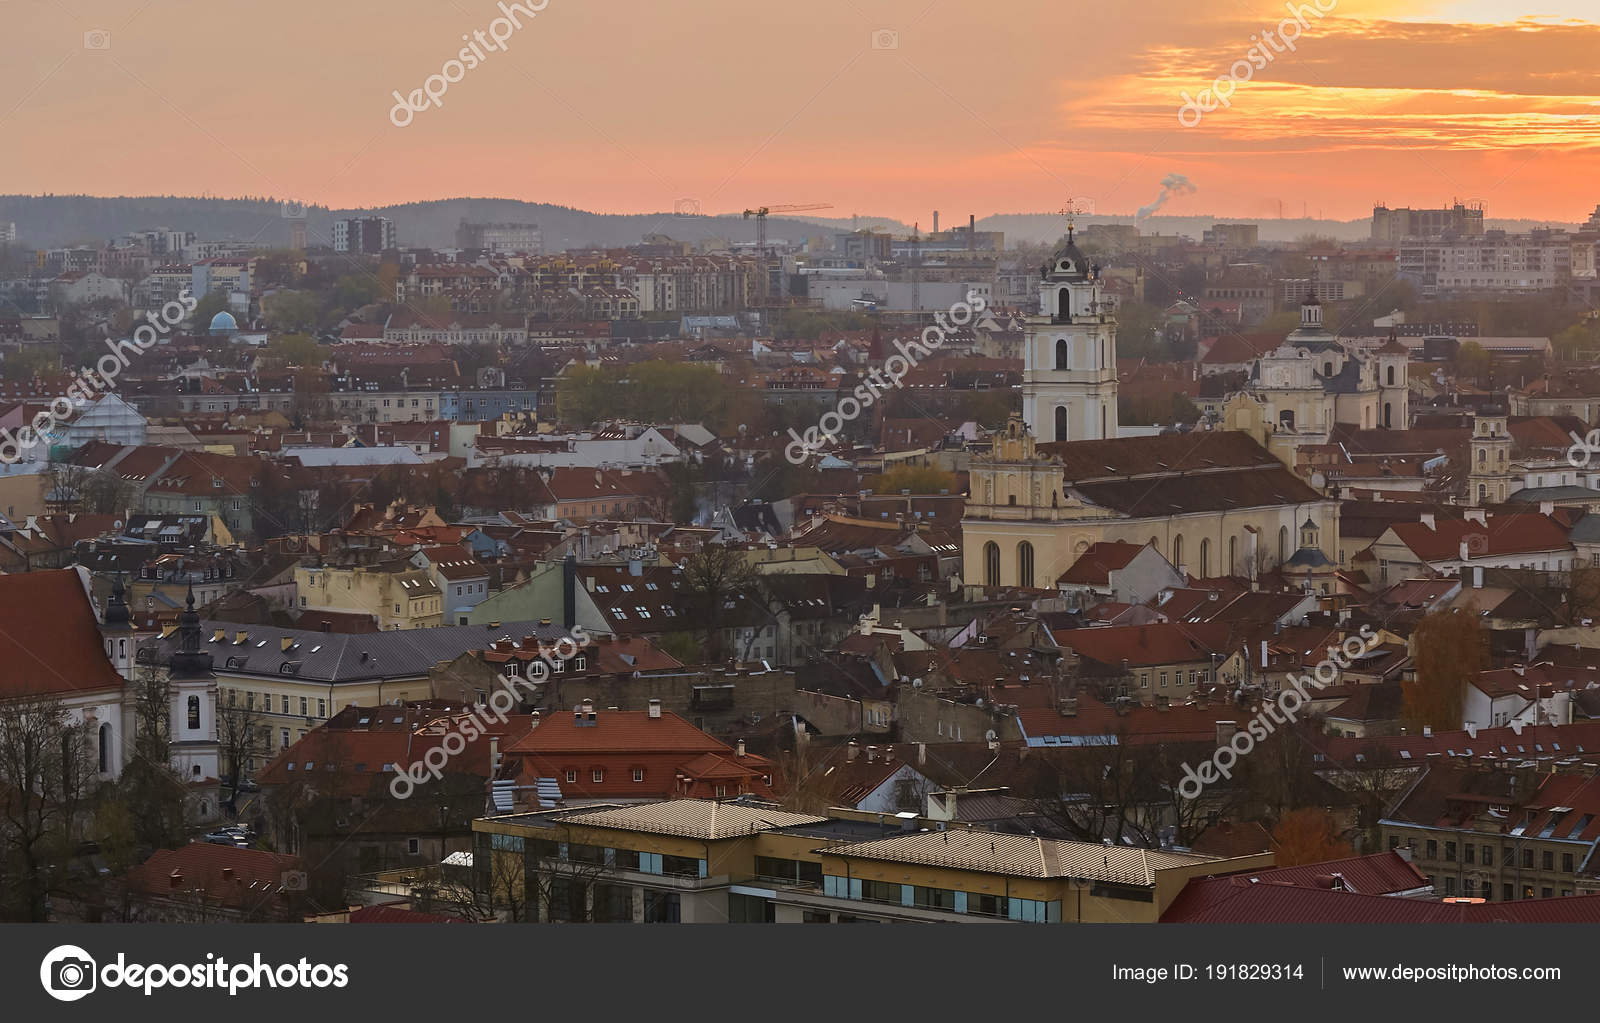 ca4fbdf6cc Vilnius, Lithuania View of the evening city from the castle mountain. —  Stock Photo